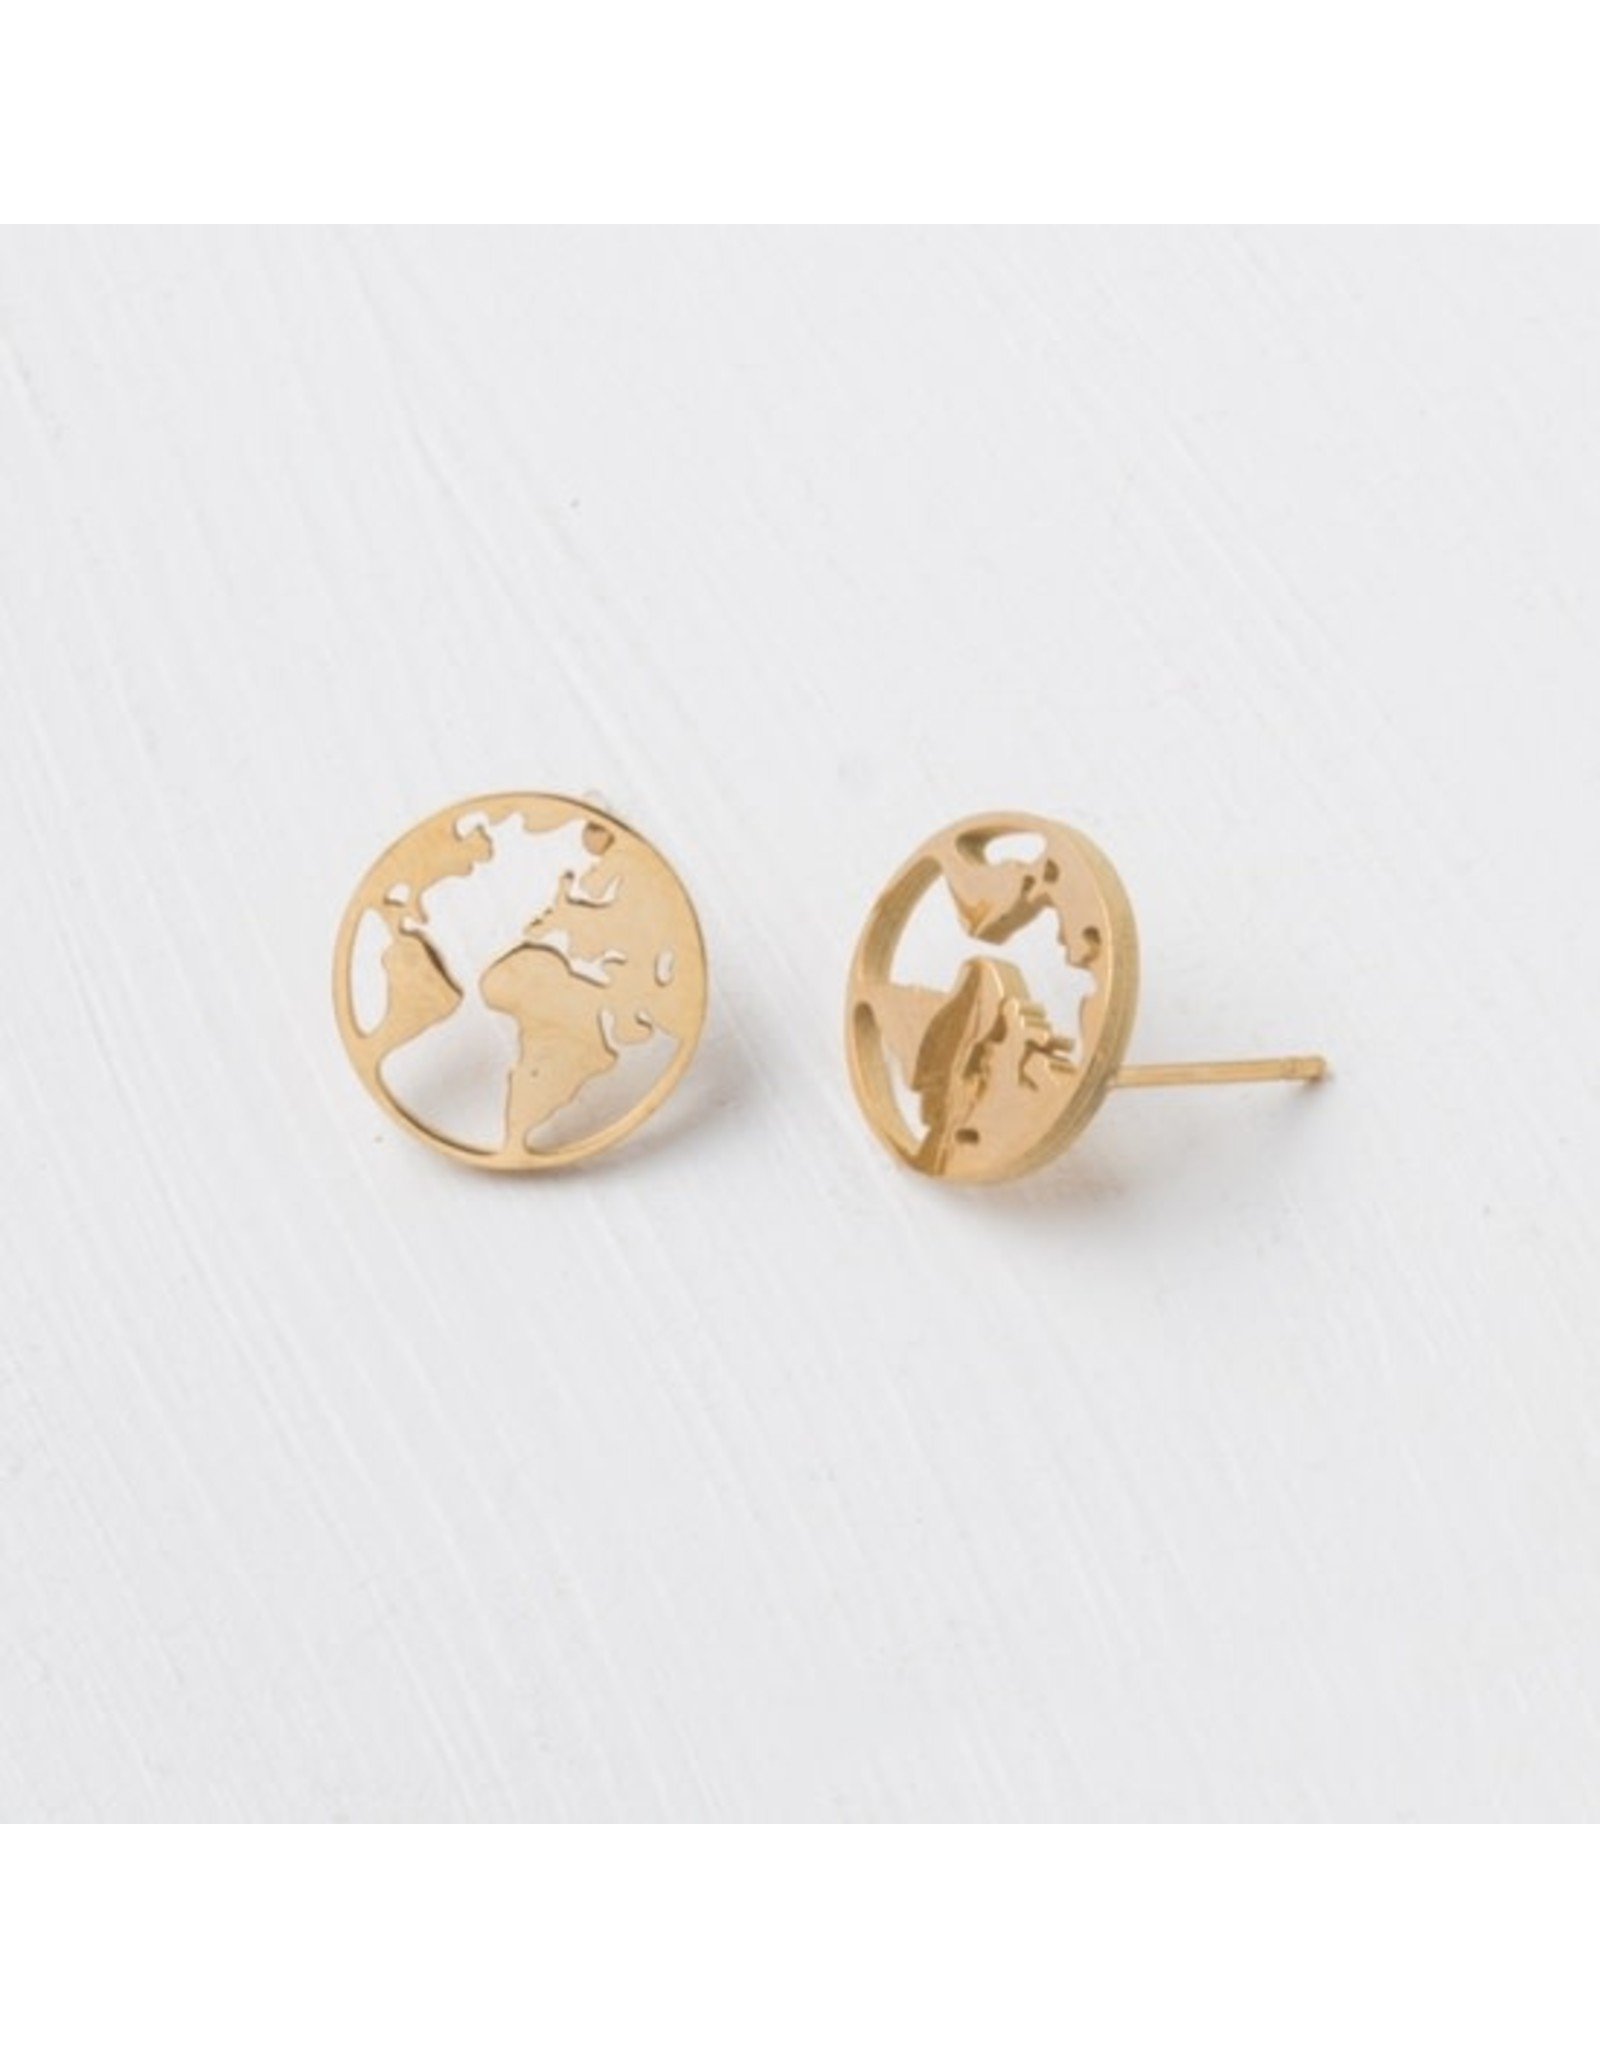 Gold Plated World Stud Earrings